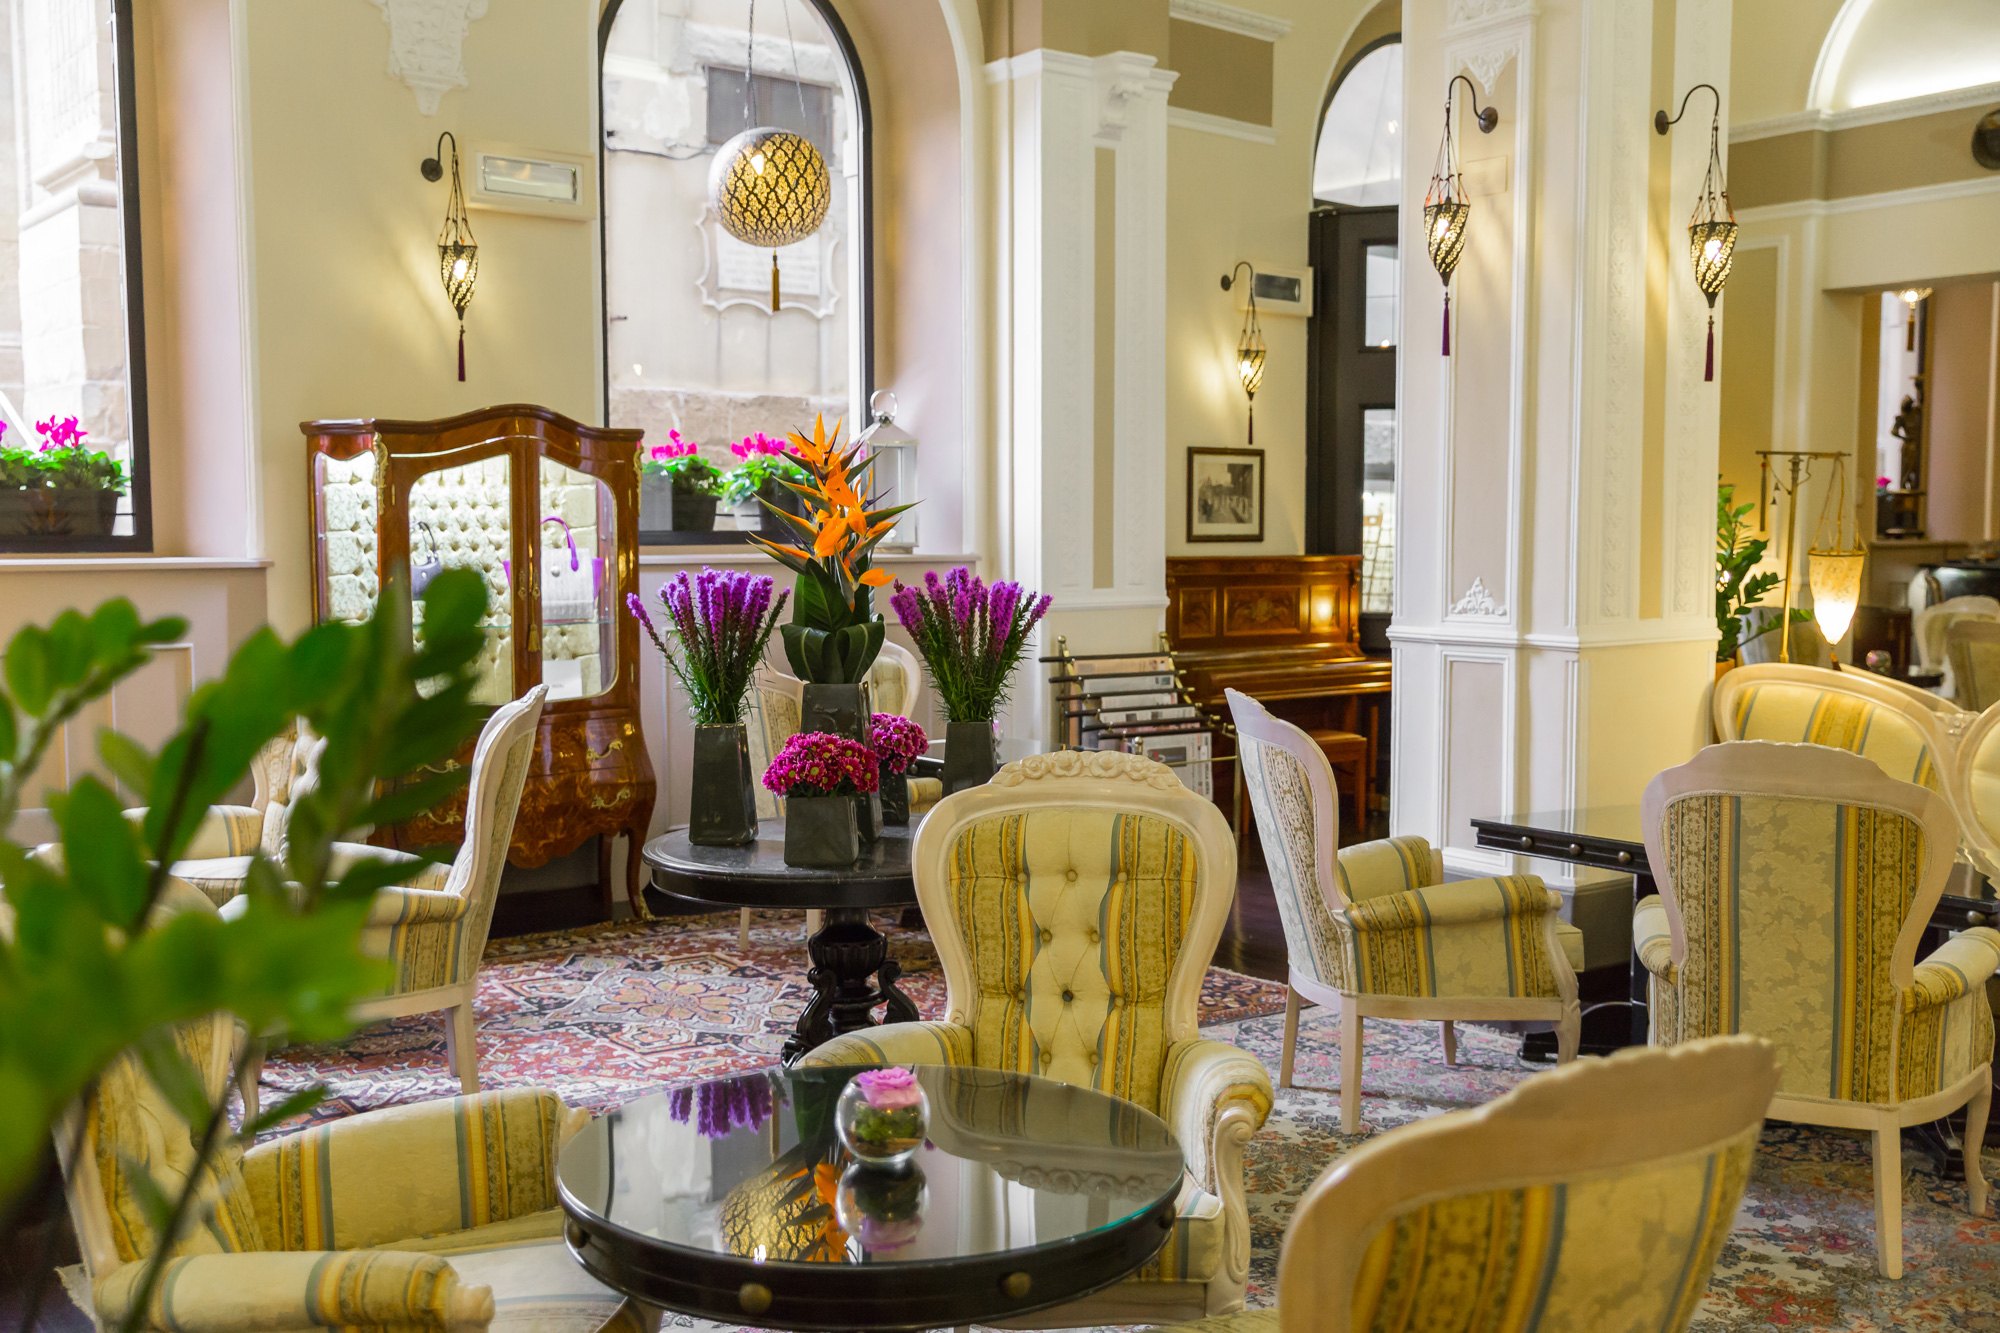 Albergo Bernini Hotel Bernini Palace Luxury Accommodations In Florence City Center